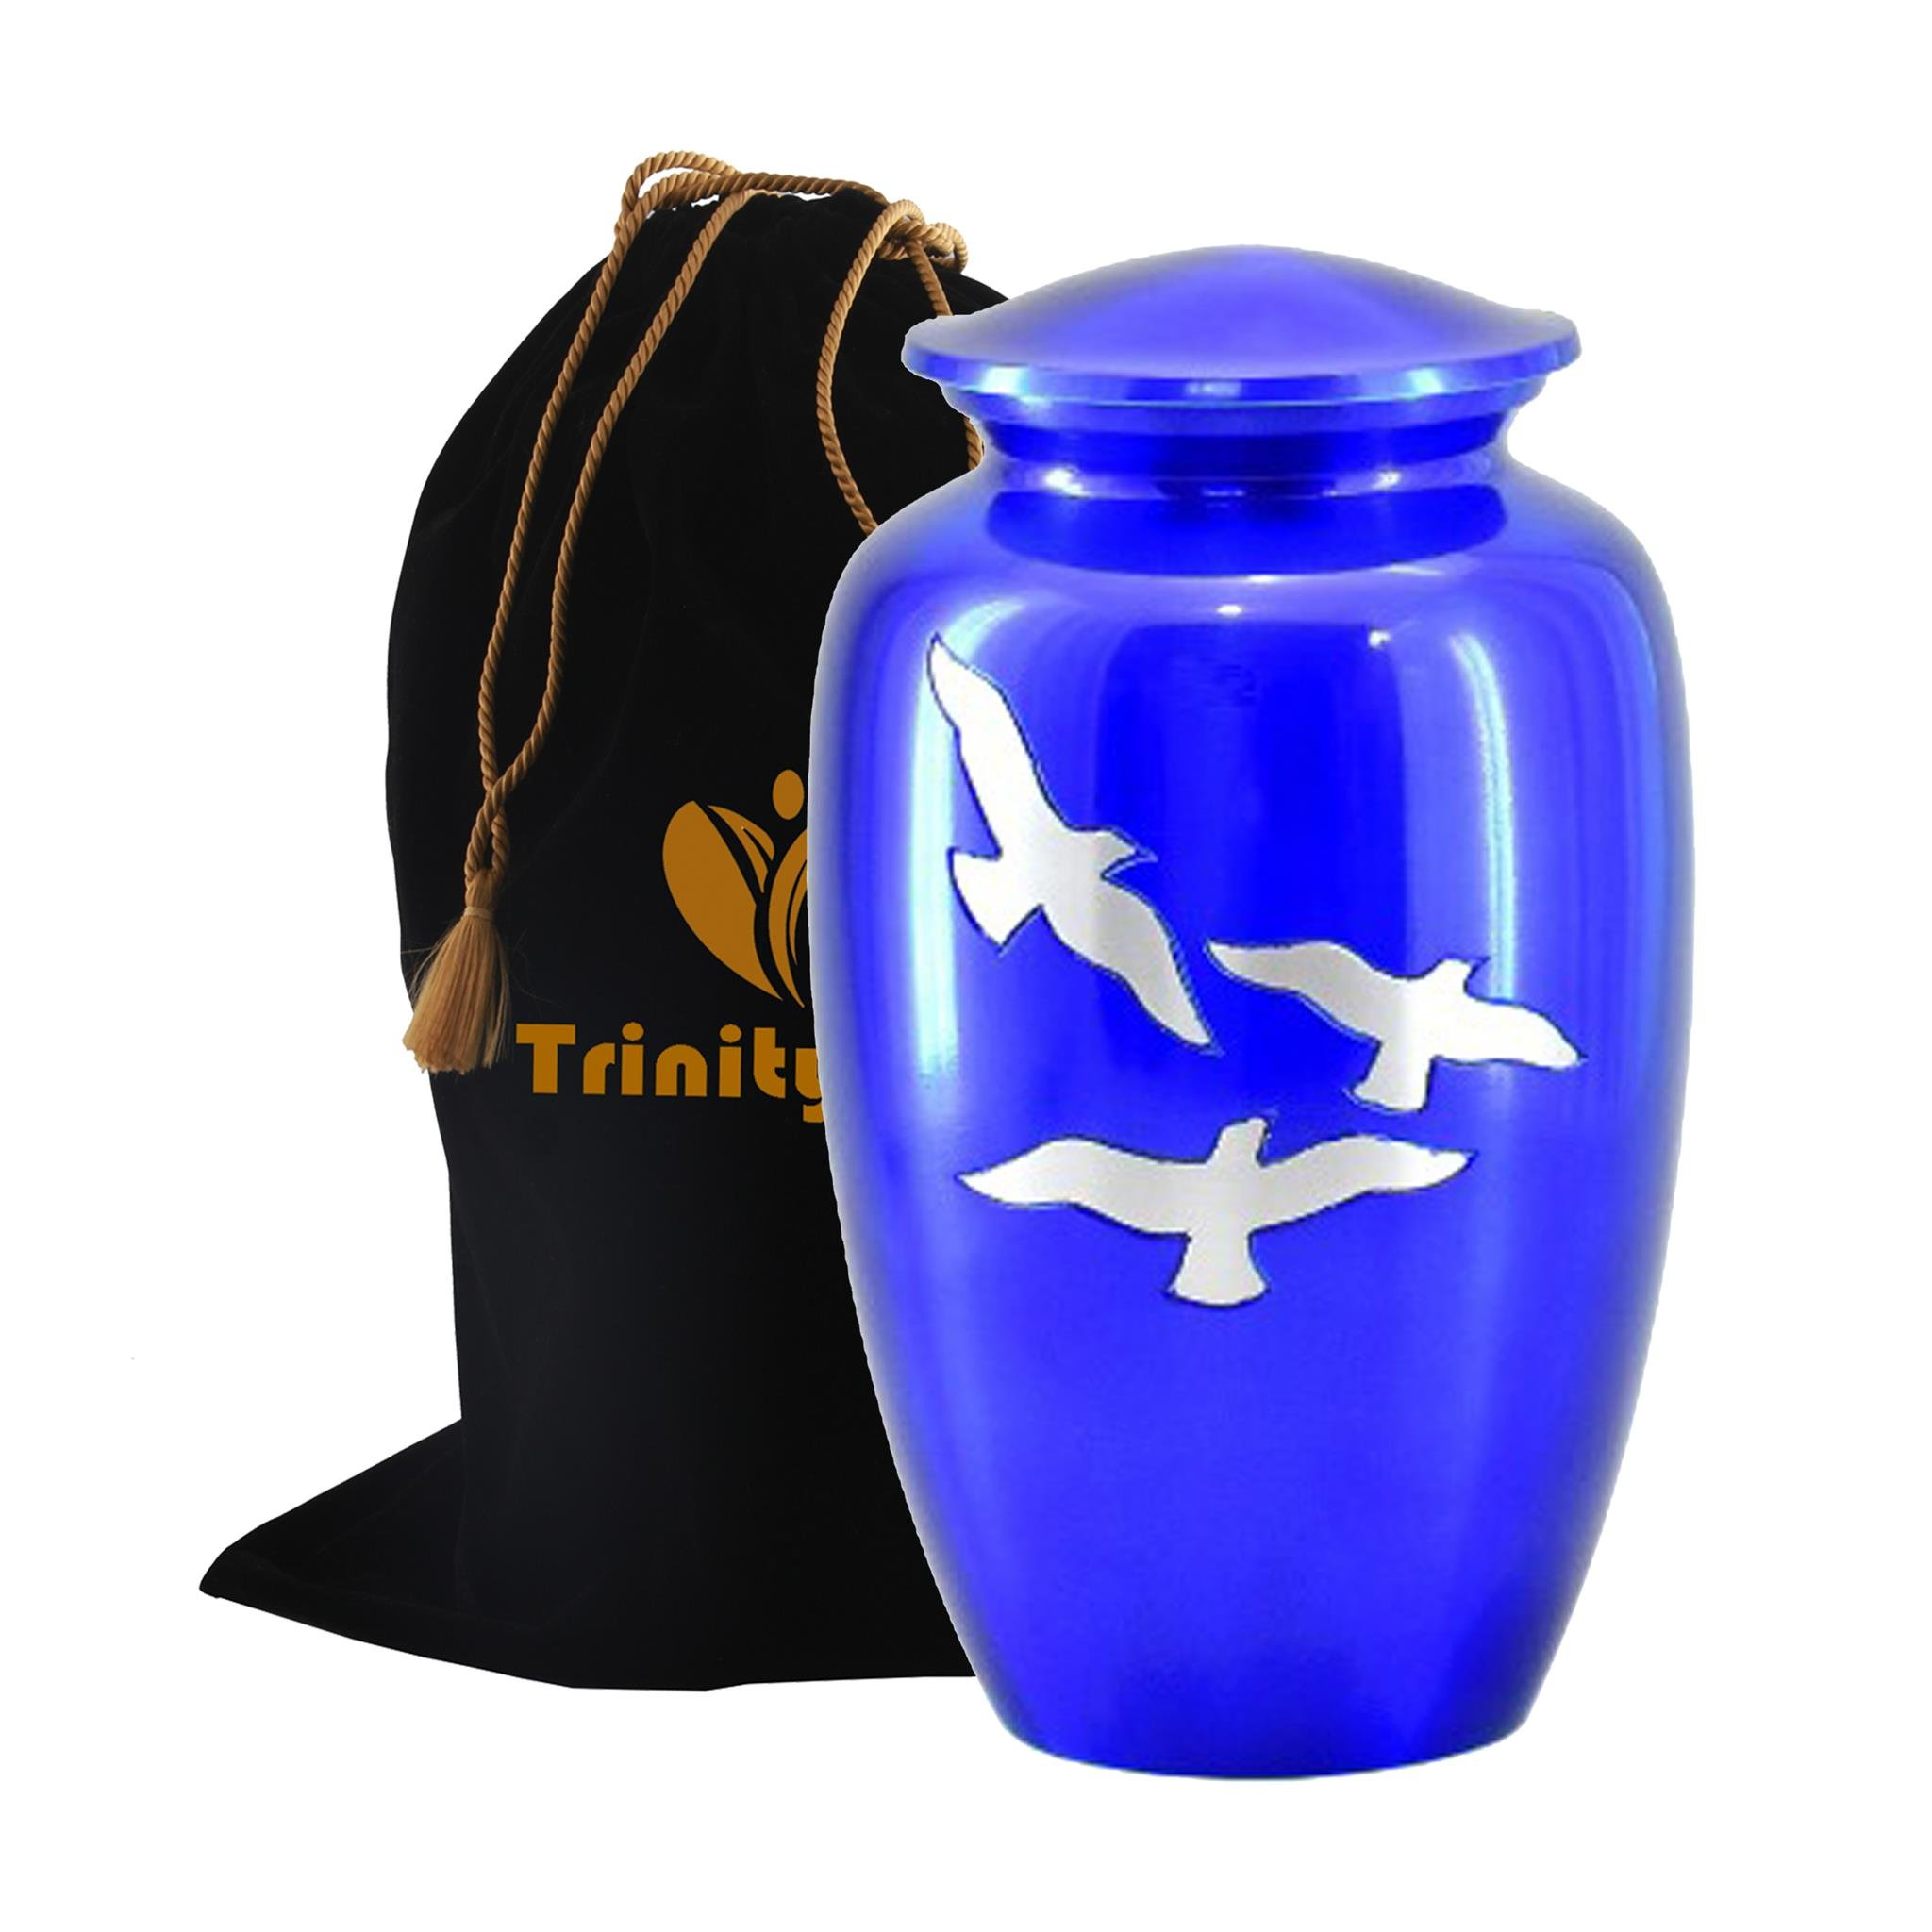 Flying Dove Cremation Urn - Beautifully Handcrafted Adult Funeral Urn - Solid Metal Funeral Urn - Affordable Urn for Human Ashes with Free Velvet Bag